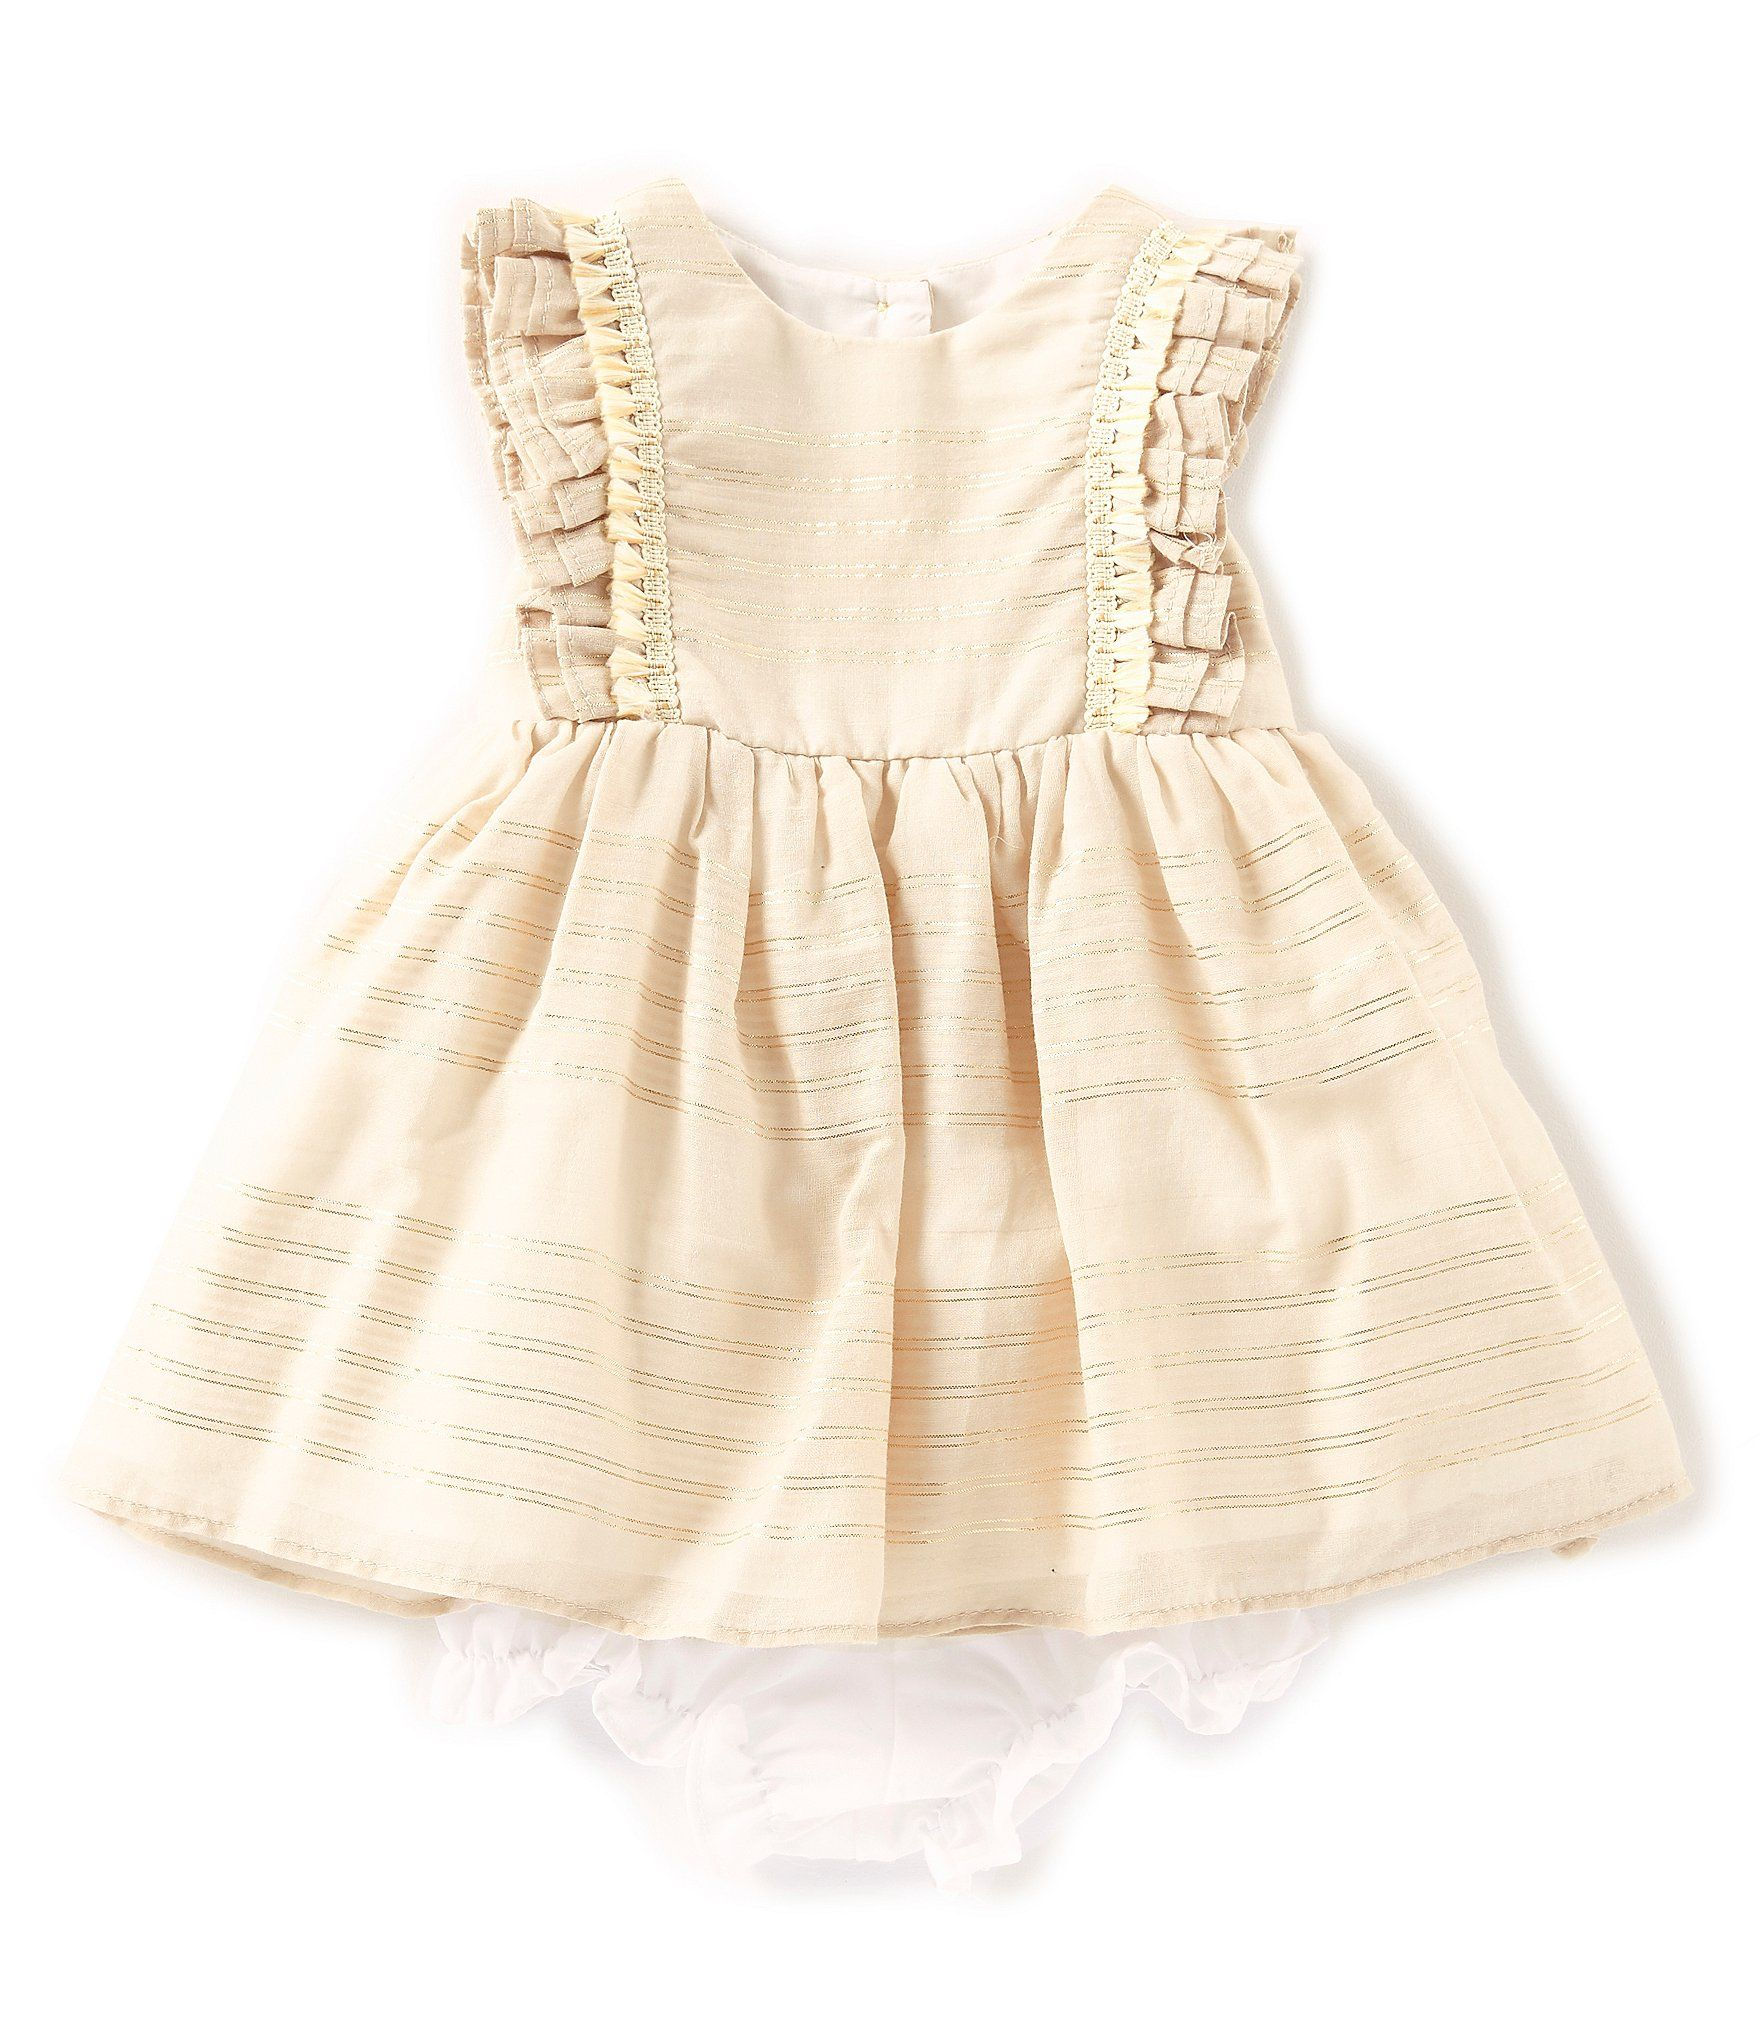 ad9bcbc0a01 Shop for Pippa   Julie Baby Girls Newborn-24 Months Flutter-Sleeve Striped  Dress at Dillards.com. Visit Dillards.com to find clothing